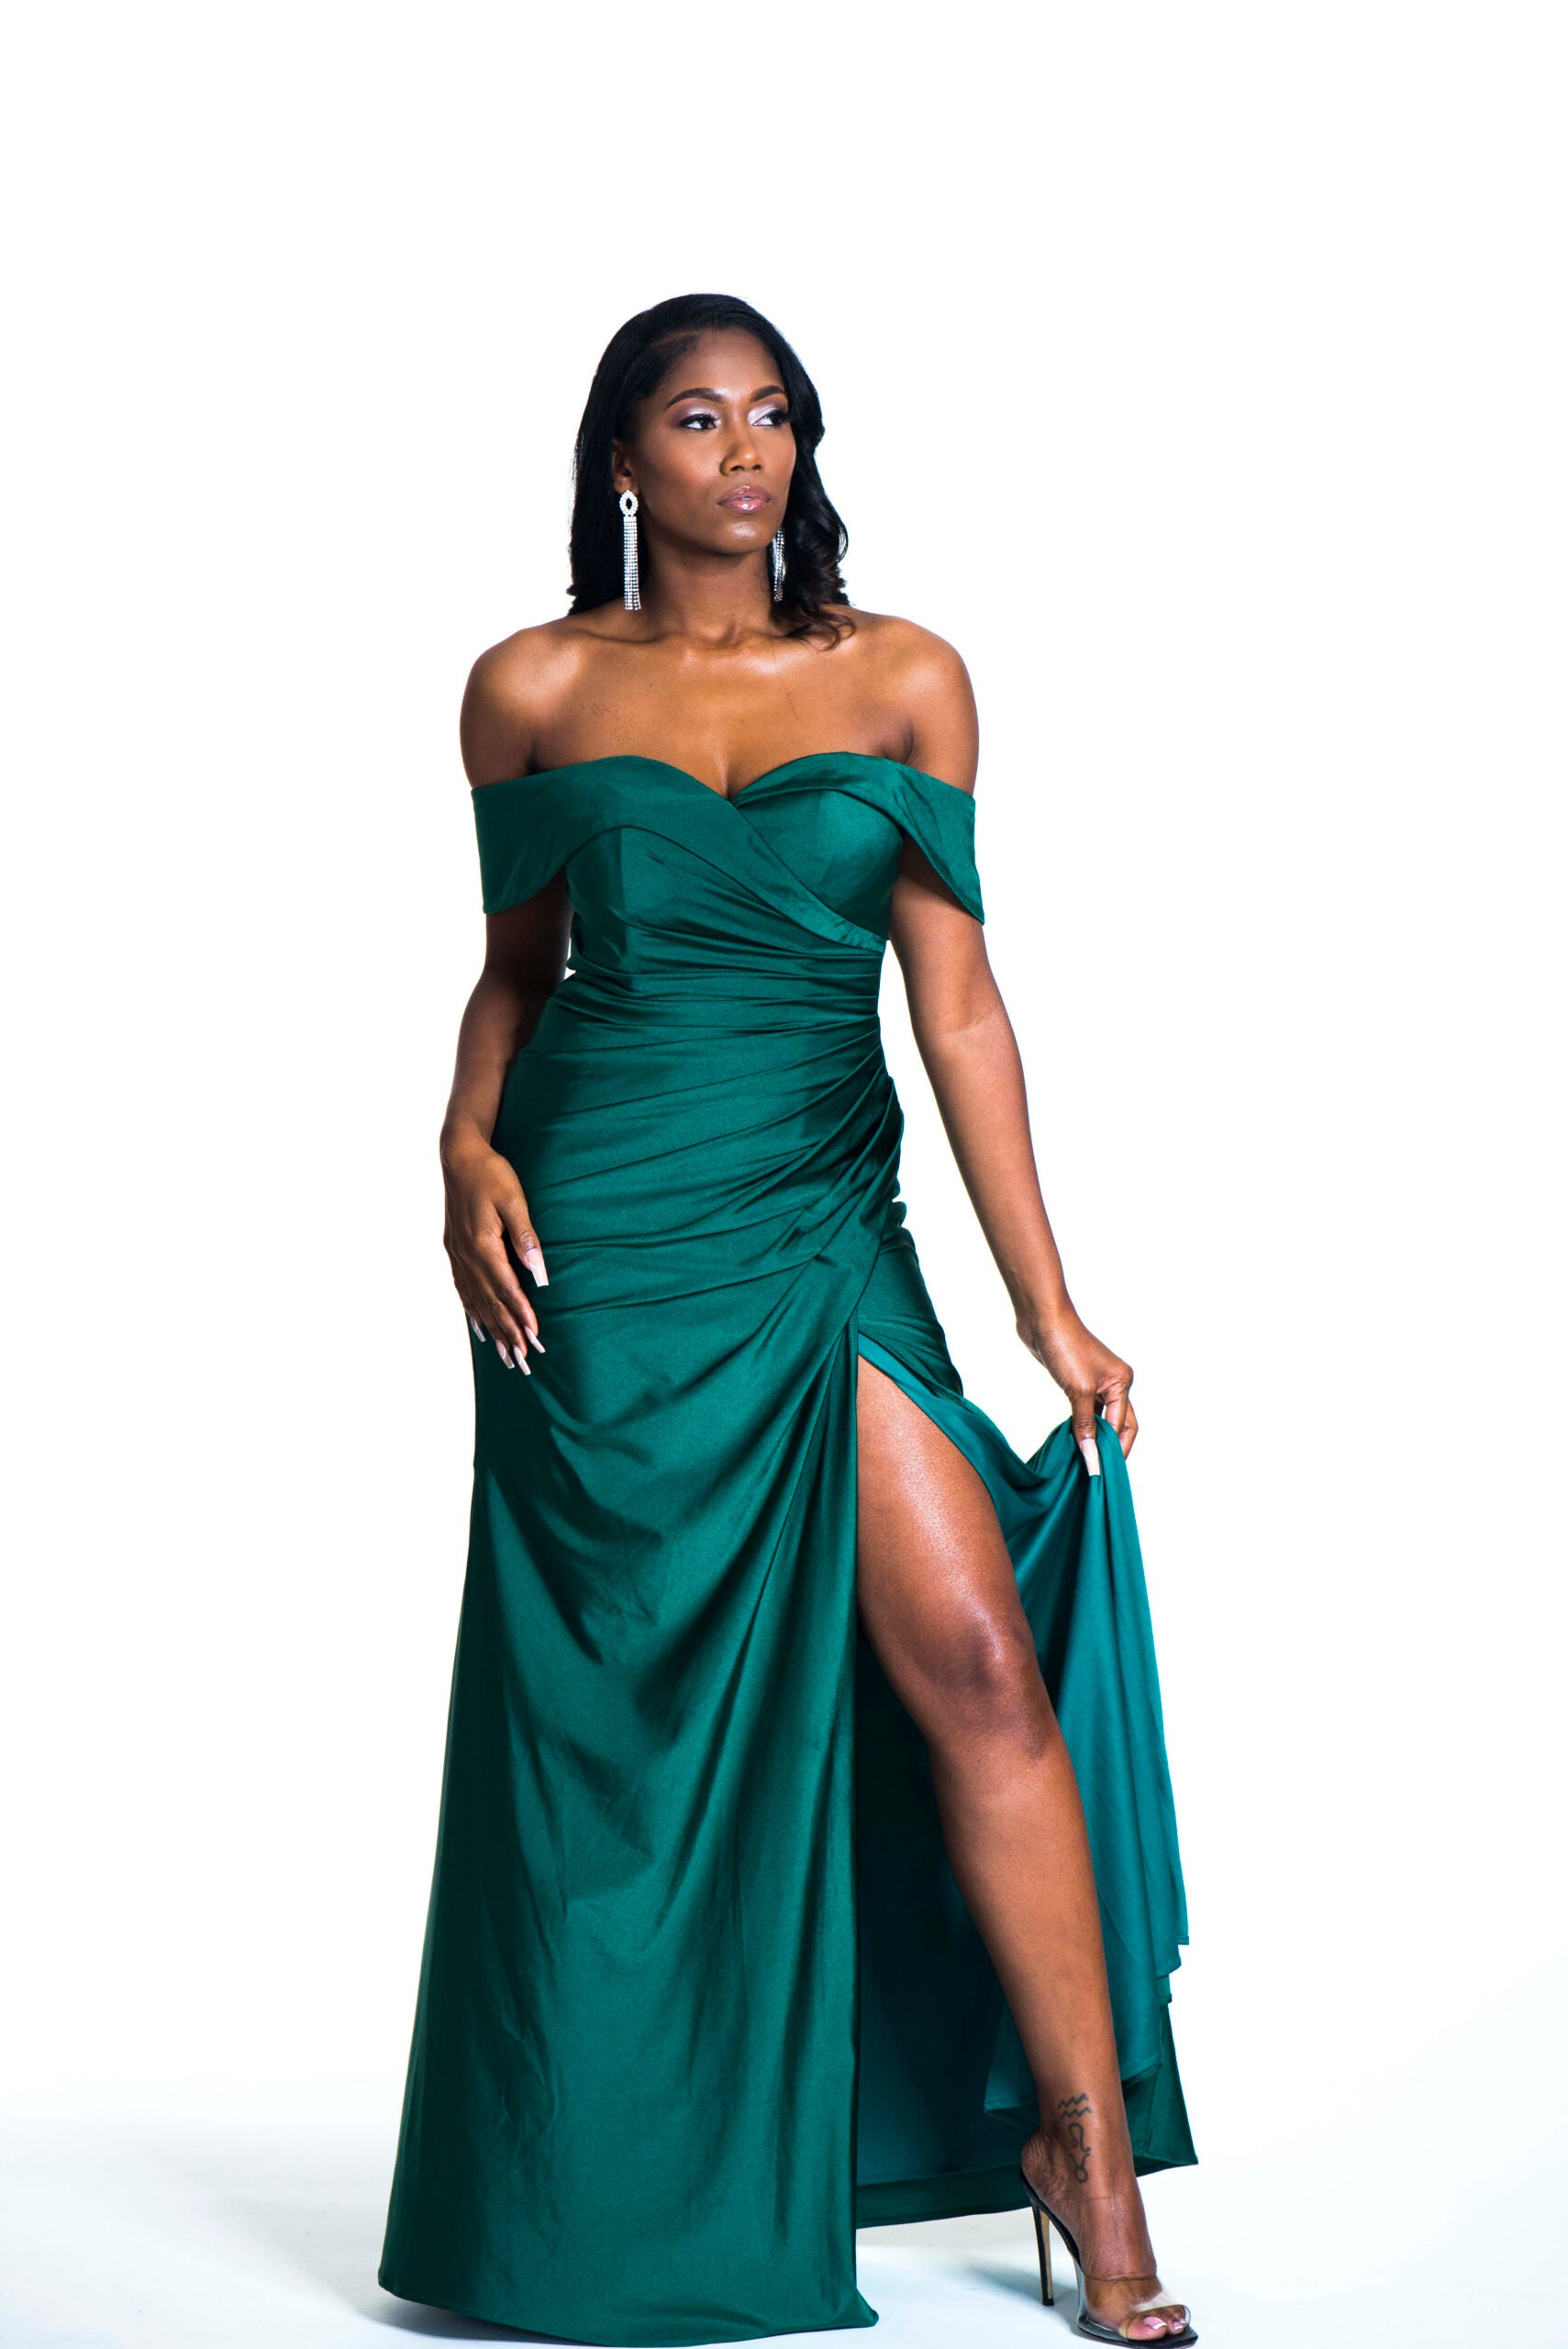 The PROMISE Dress - Emerald Green